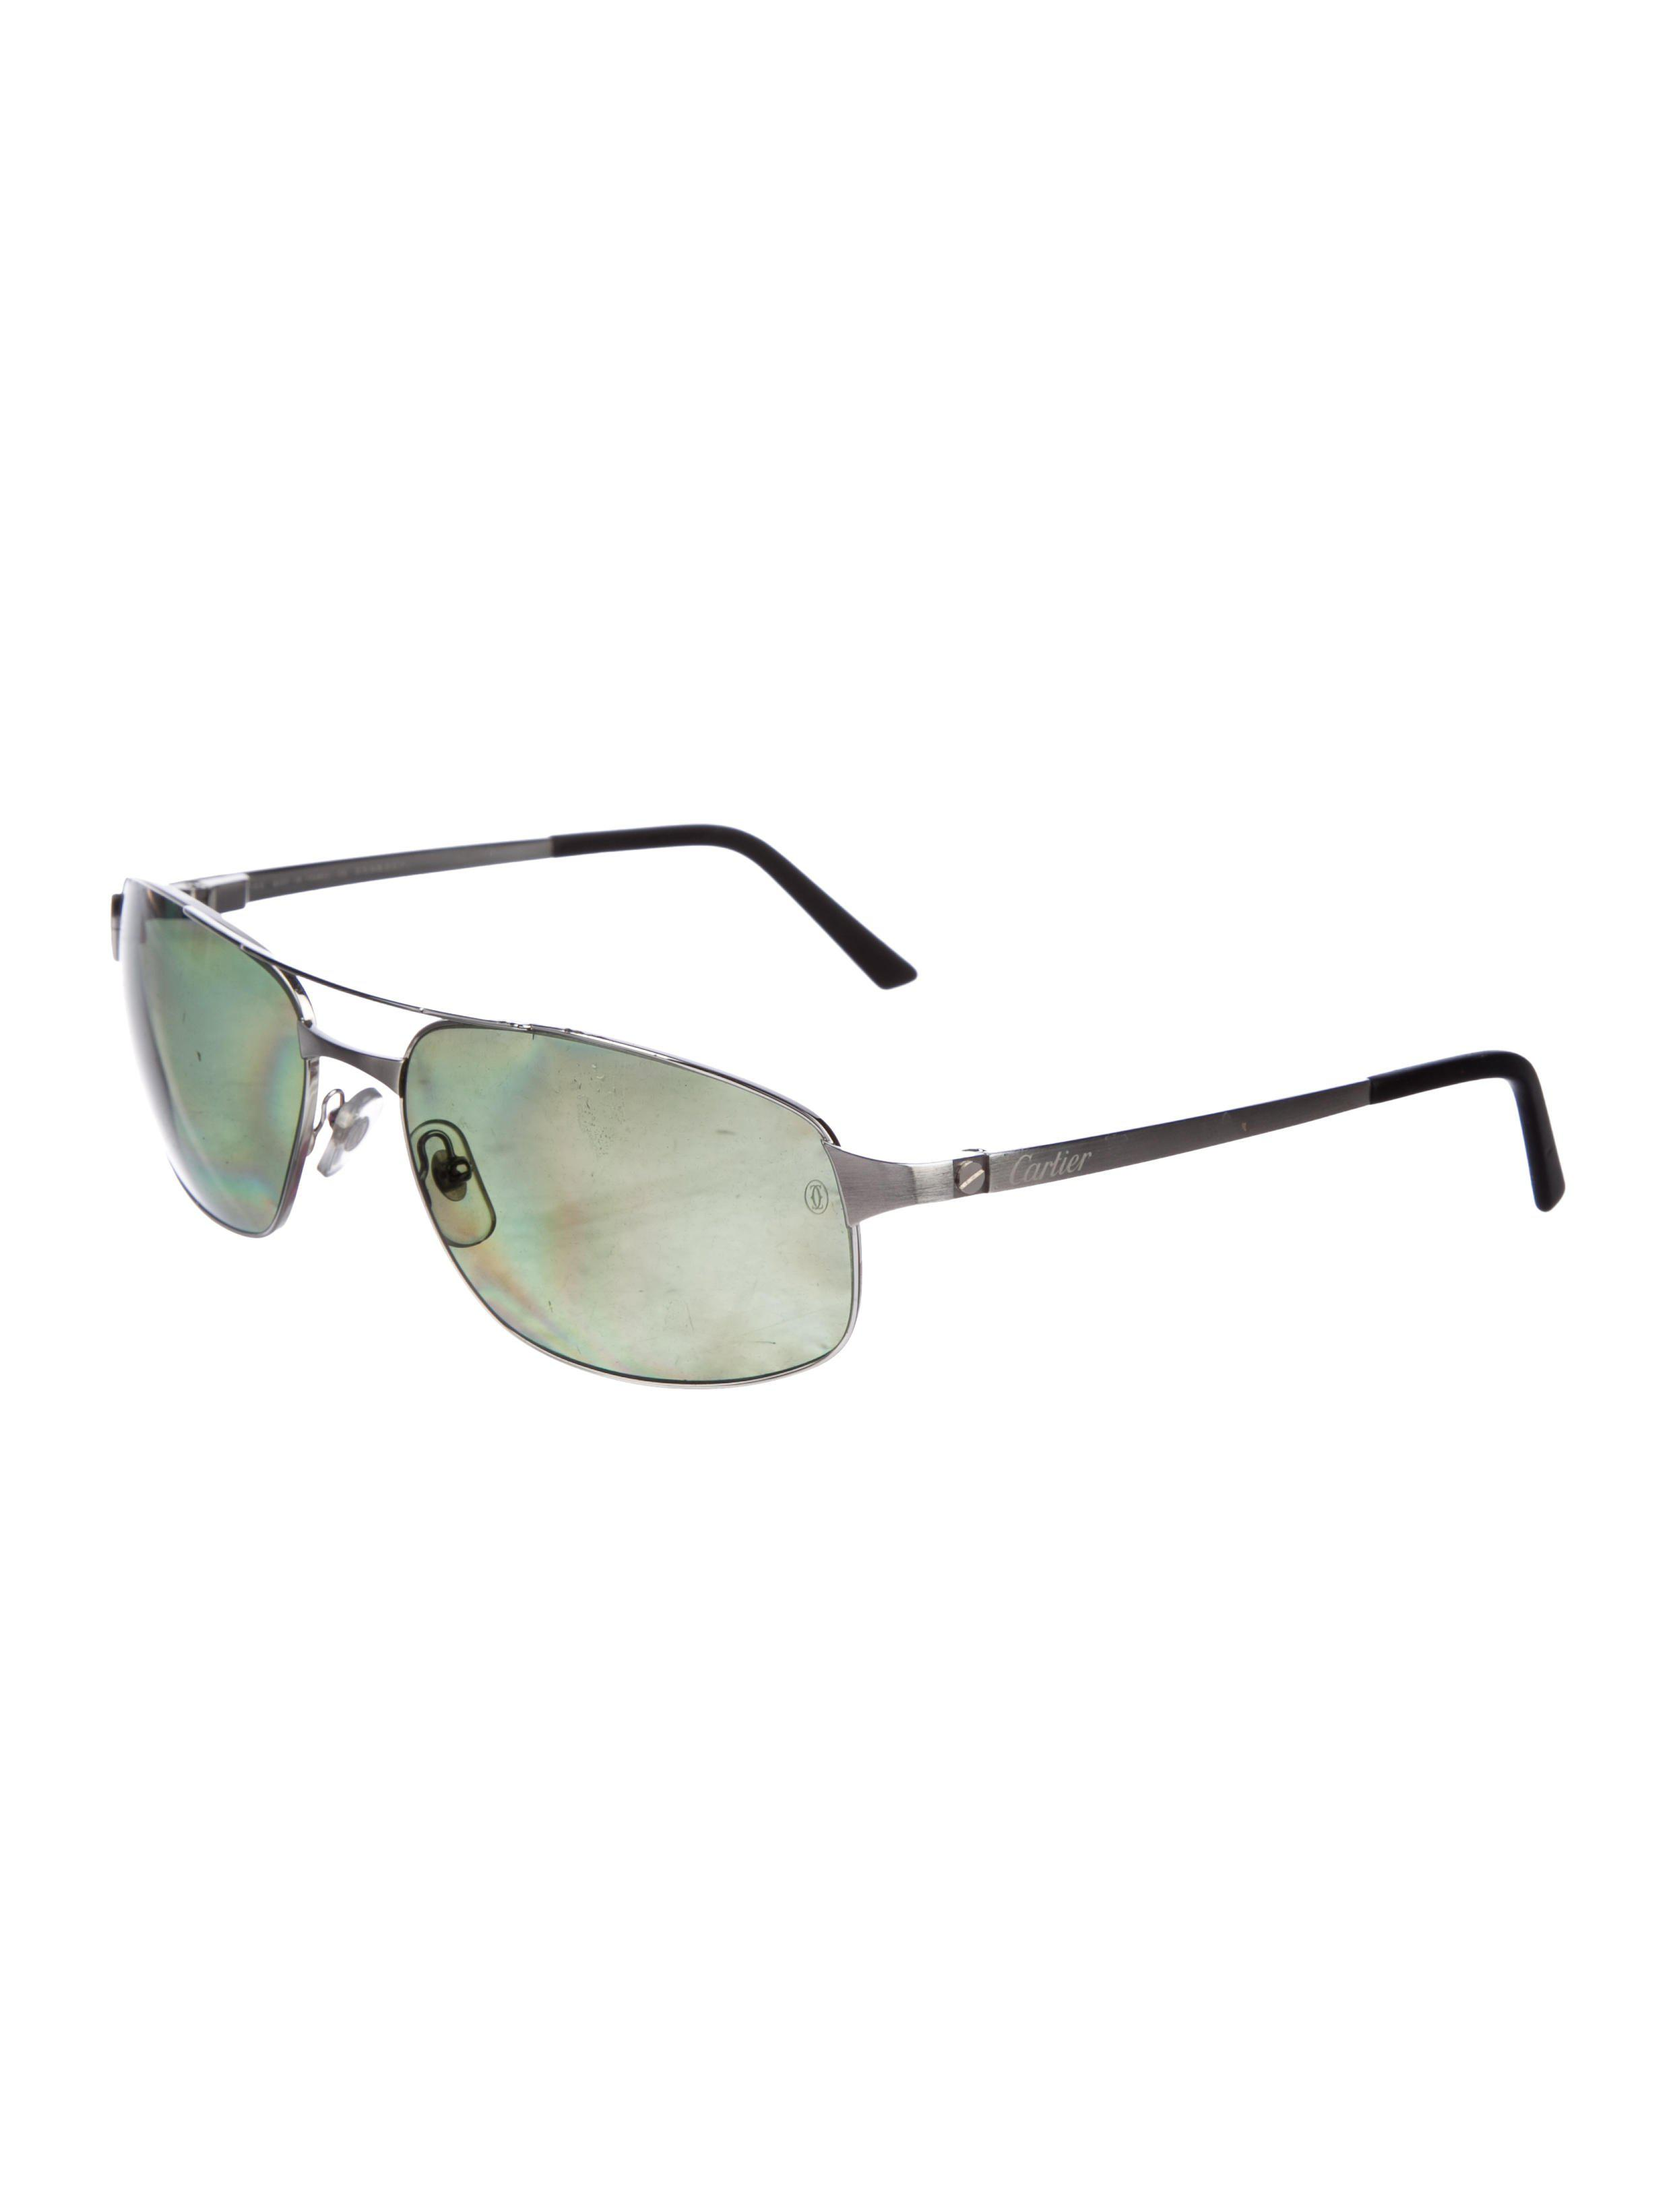 4c3324fd402 Lyst - Cartier Santos De Polarized Sunglasses Silver in Metallic